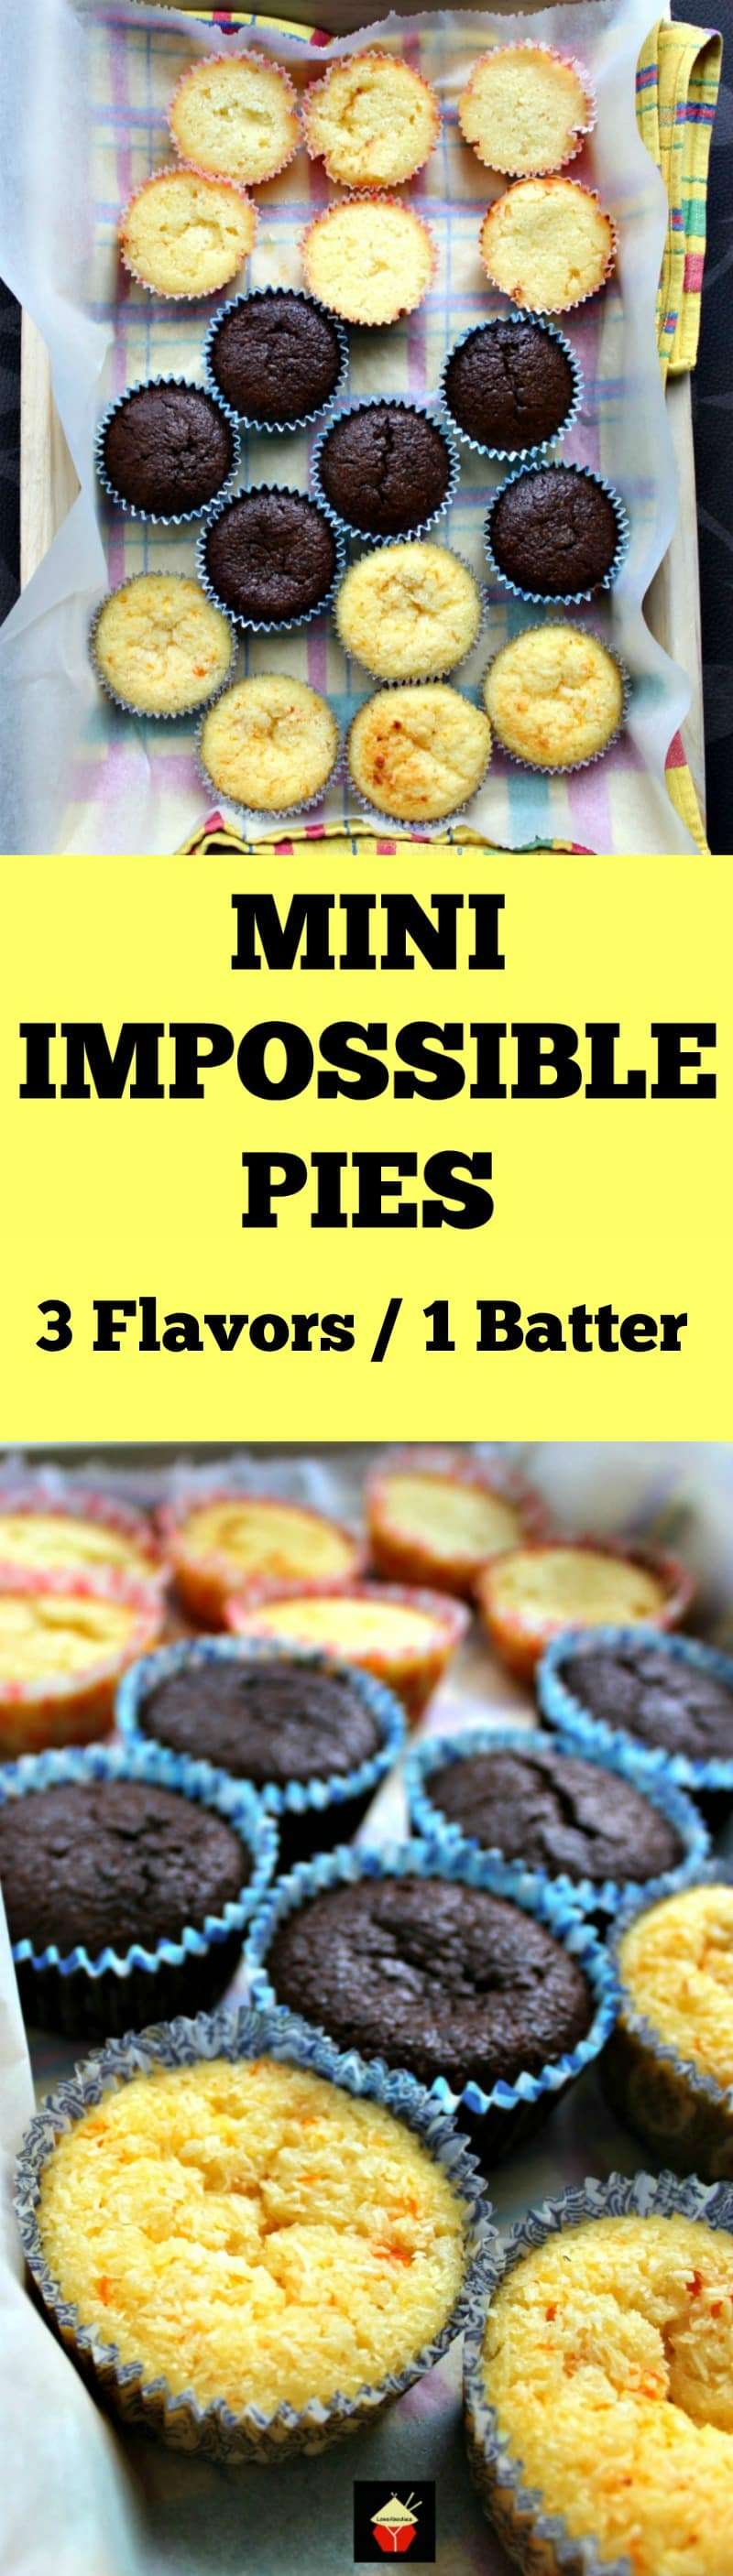 Mini Impossible Pies! Recipe for 3 different flavors using only 1 batter. Great for parties and always so popular!   Lovefoodies.com